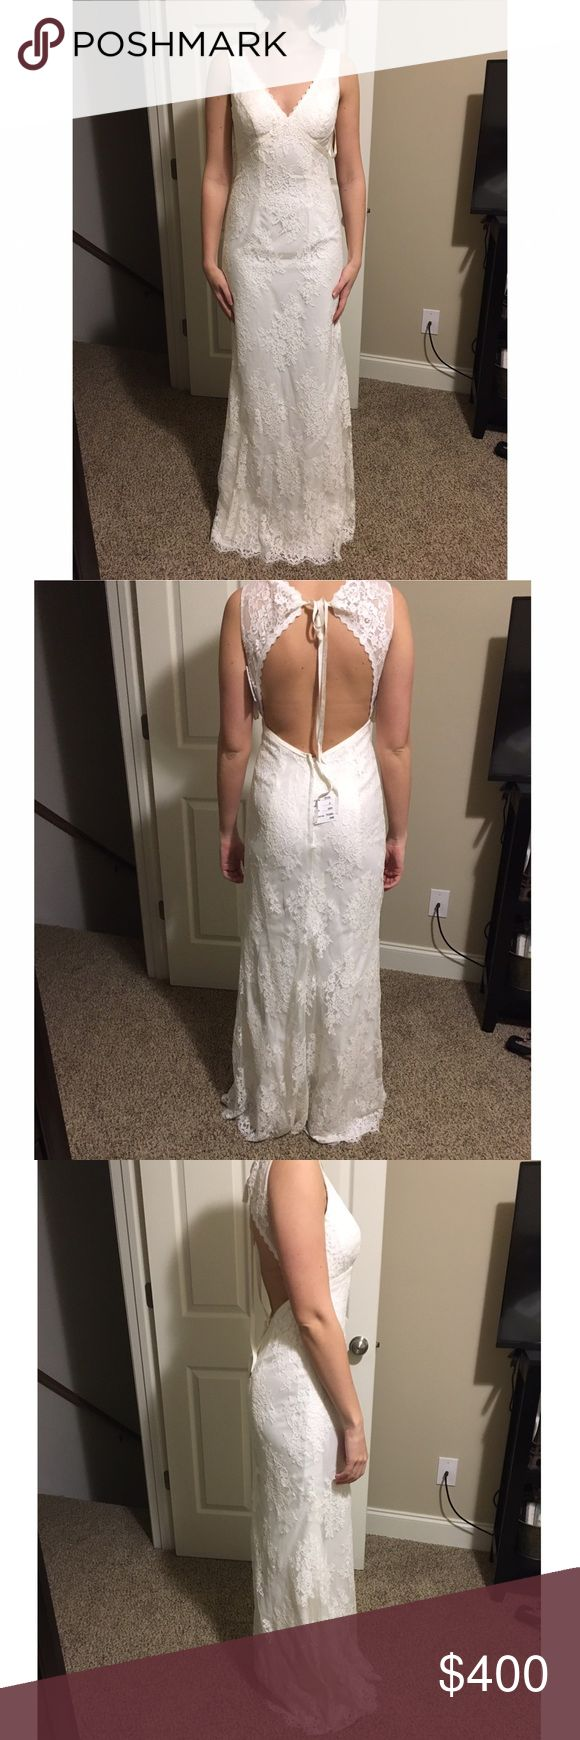 "Lace wedding dress Ivory all over lace, empire waist, keyhole back. I bought it at David's Bridal for a beach wedding then changed my mind on location and picked a different dress! Tags still on. Only had a month. Cup padding added. No alterations. I'm 5'6"" 117 pounds. Dresses Wedding"